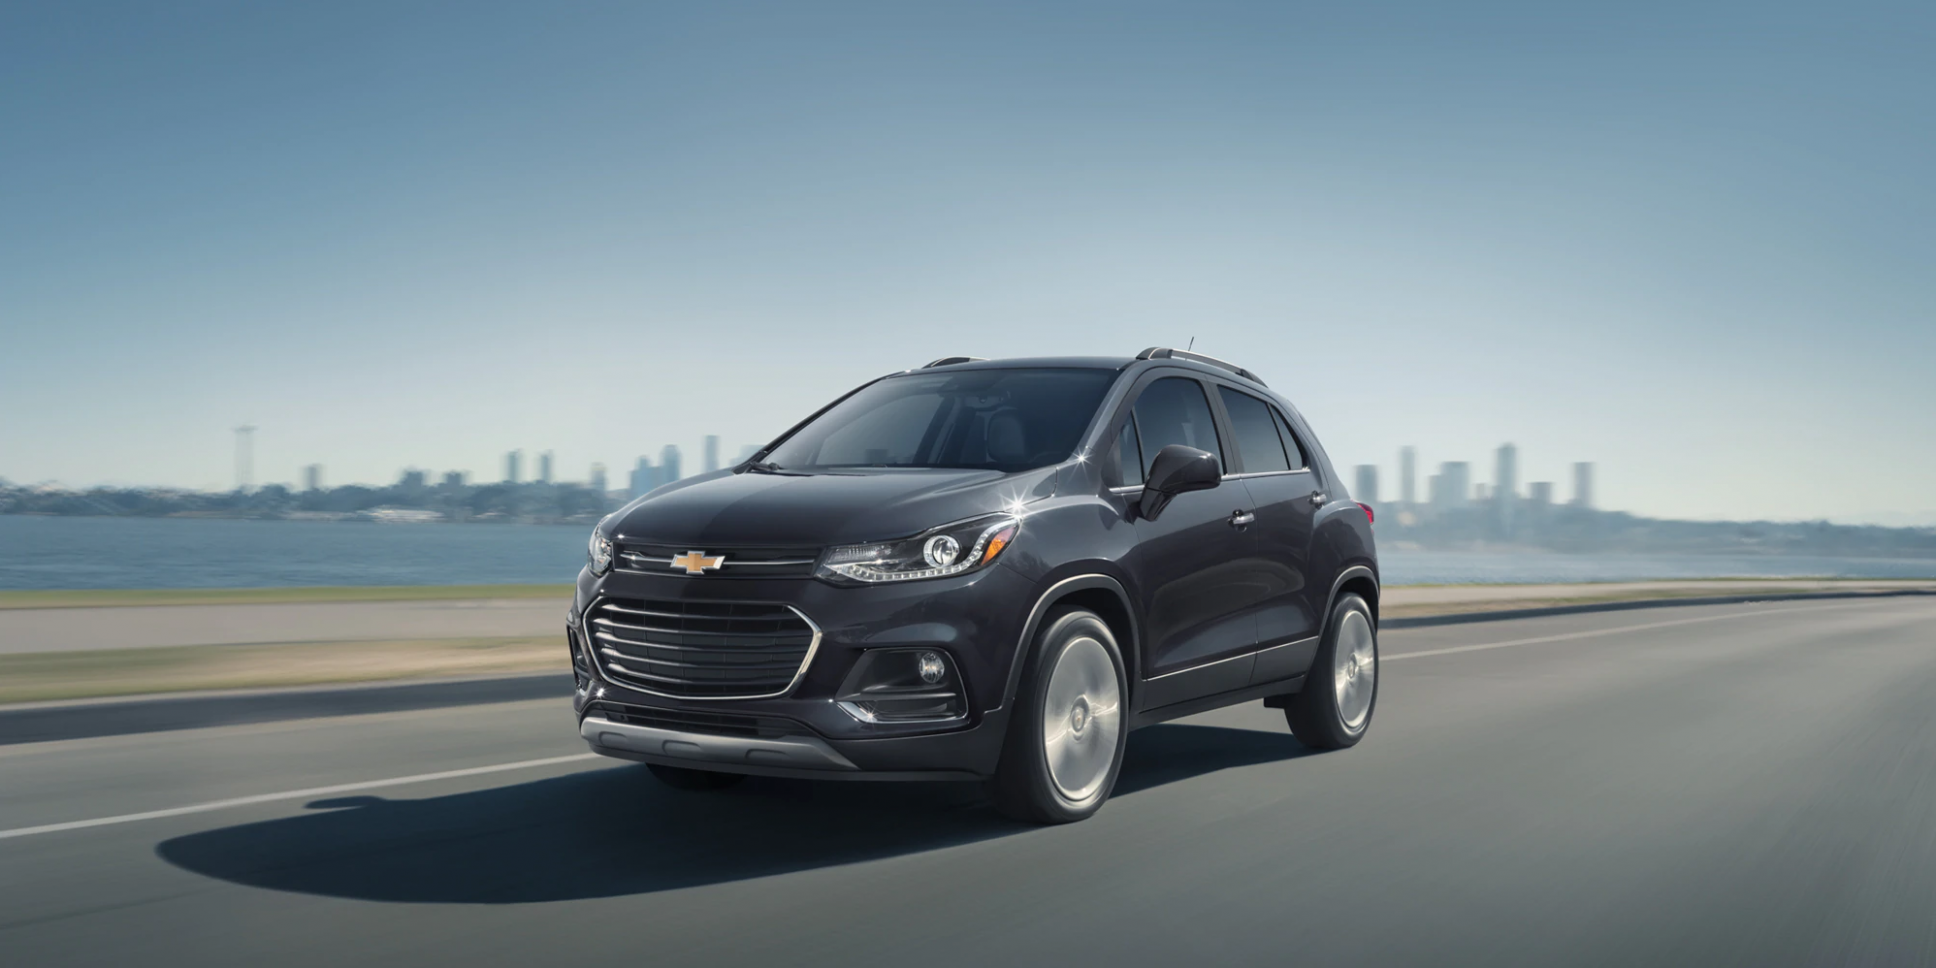 7 Chevrolet Trax Review, Pricing, and Specs - 2020 chevrolet trax